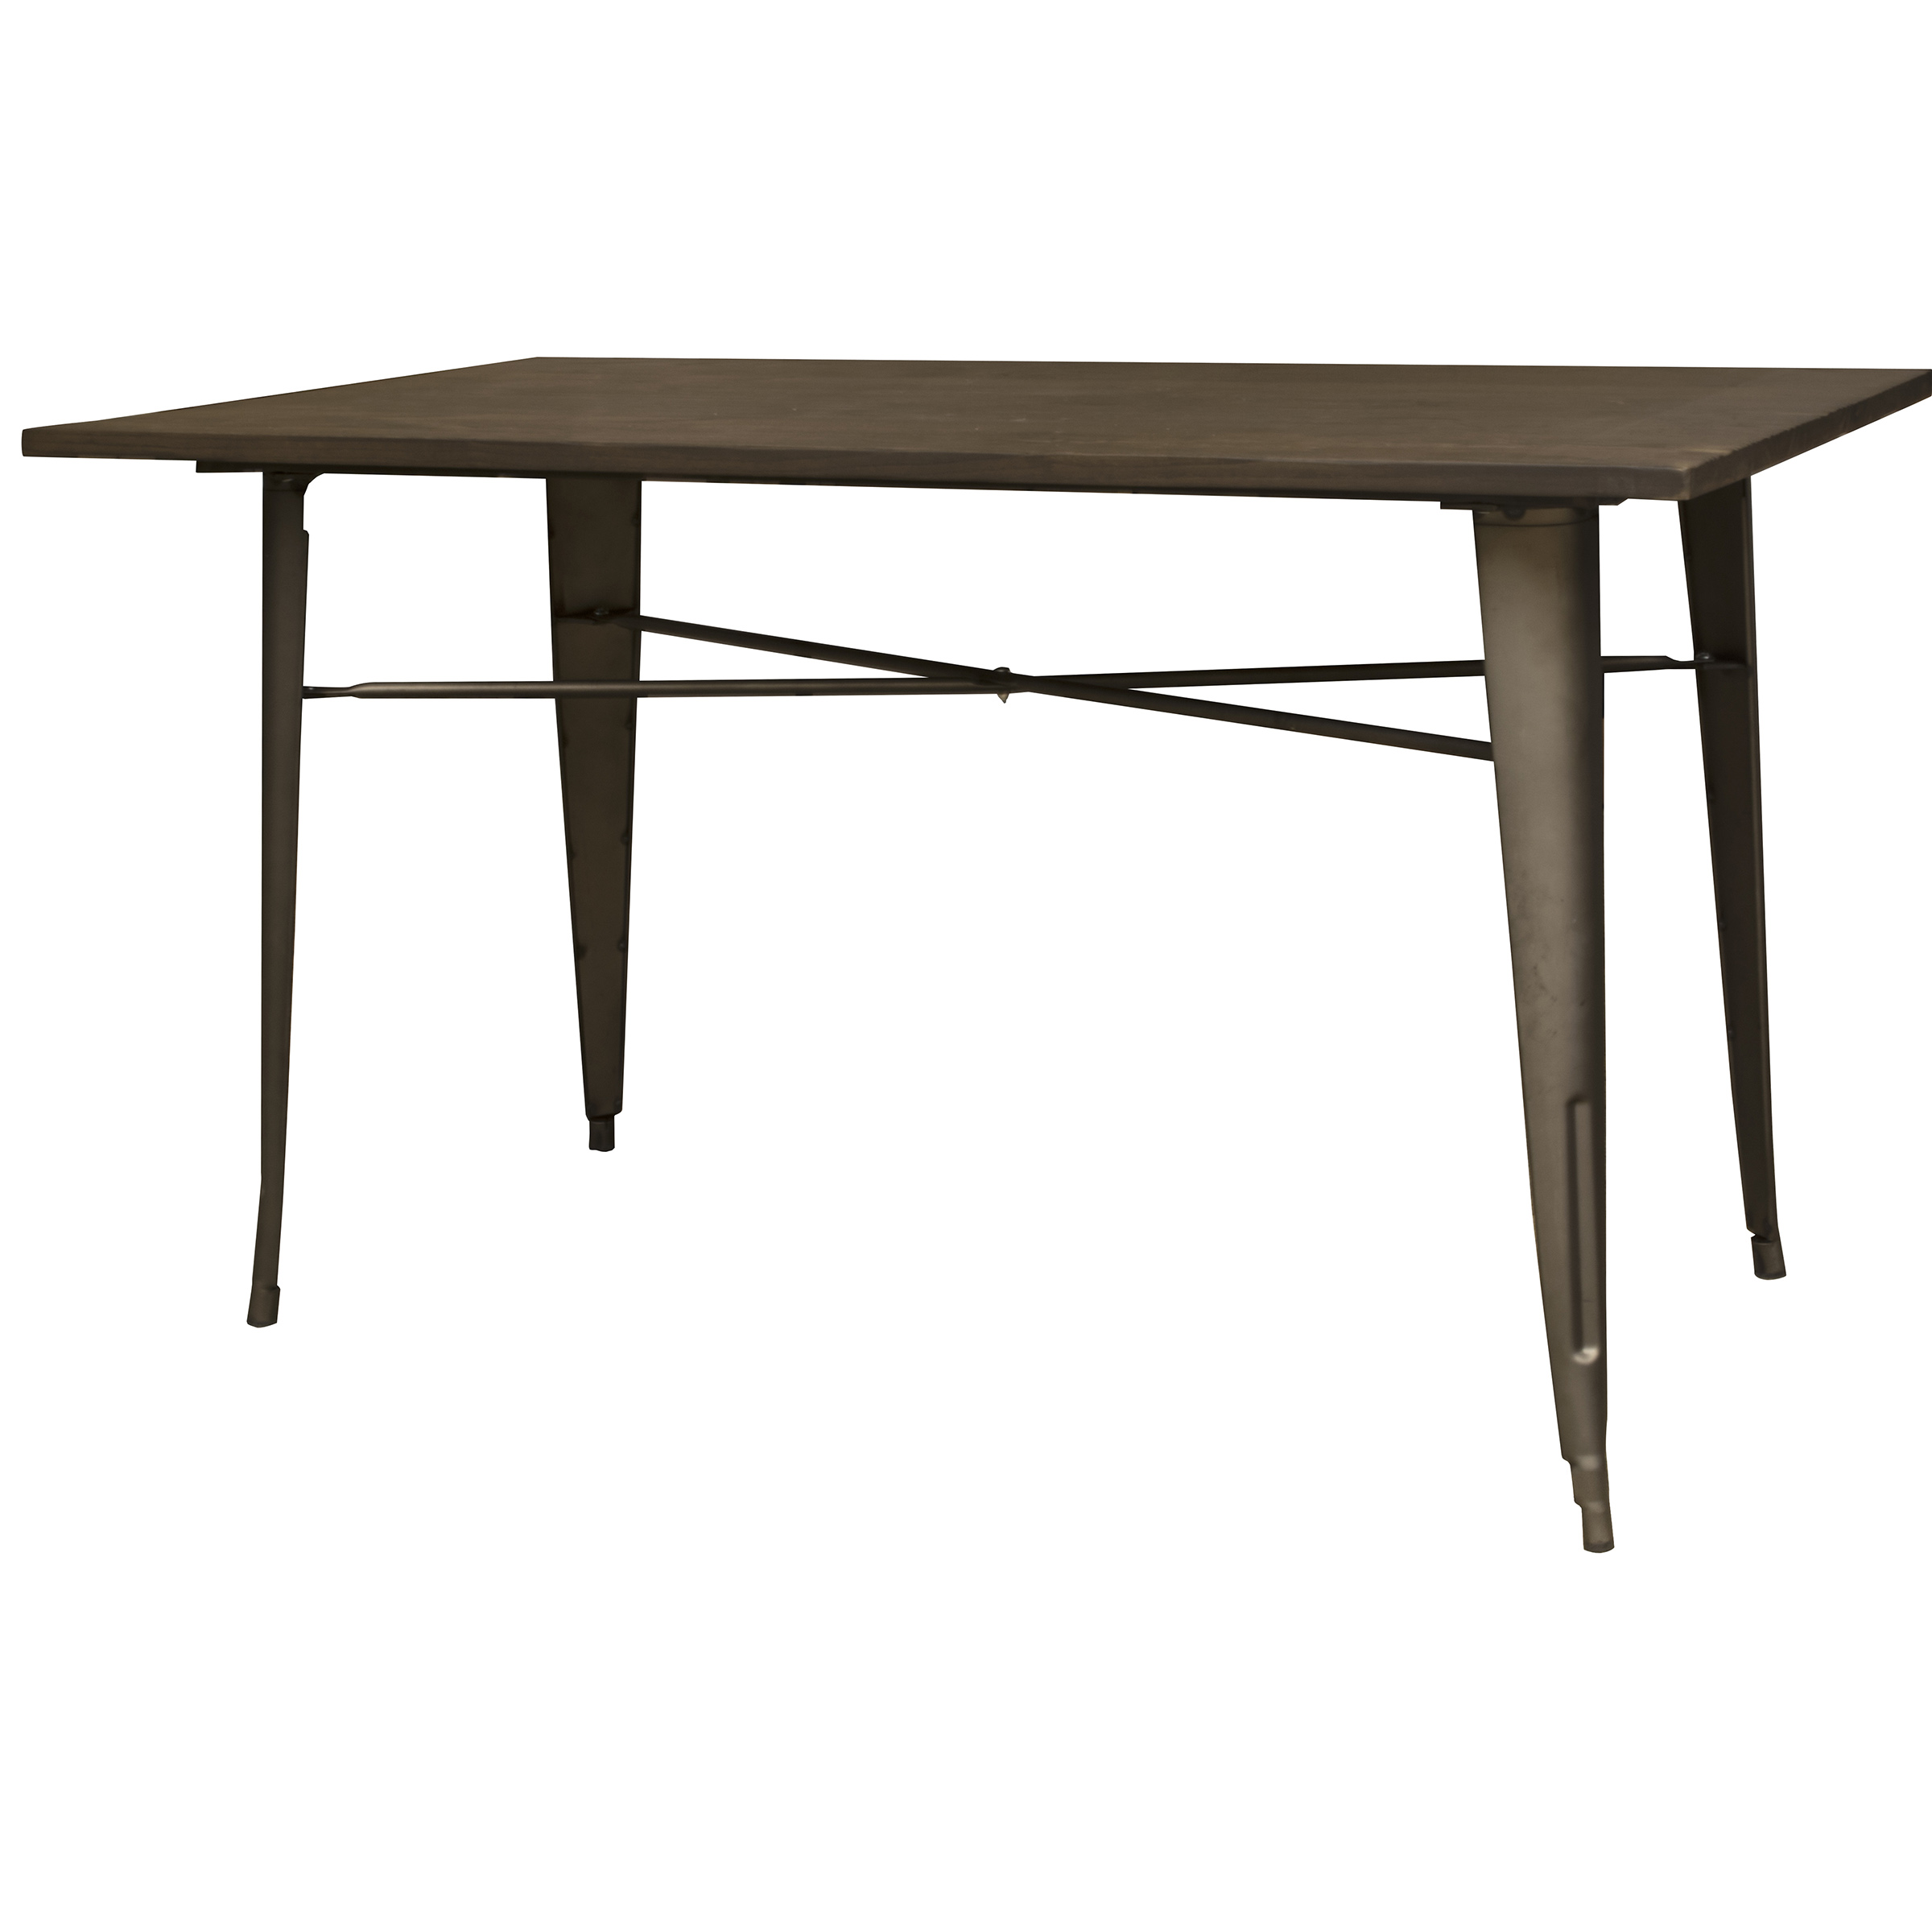 AmeriHome Loft Rustic Gunmetal Metal Dining Table with Wood Top